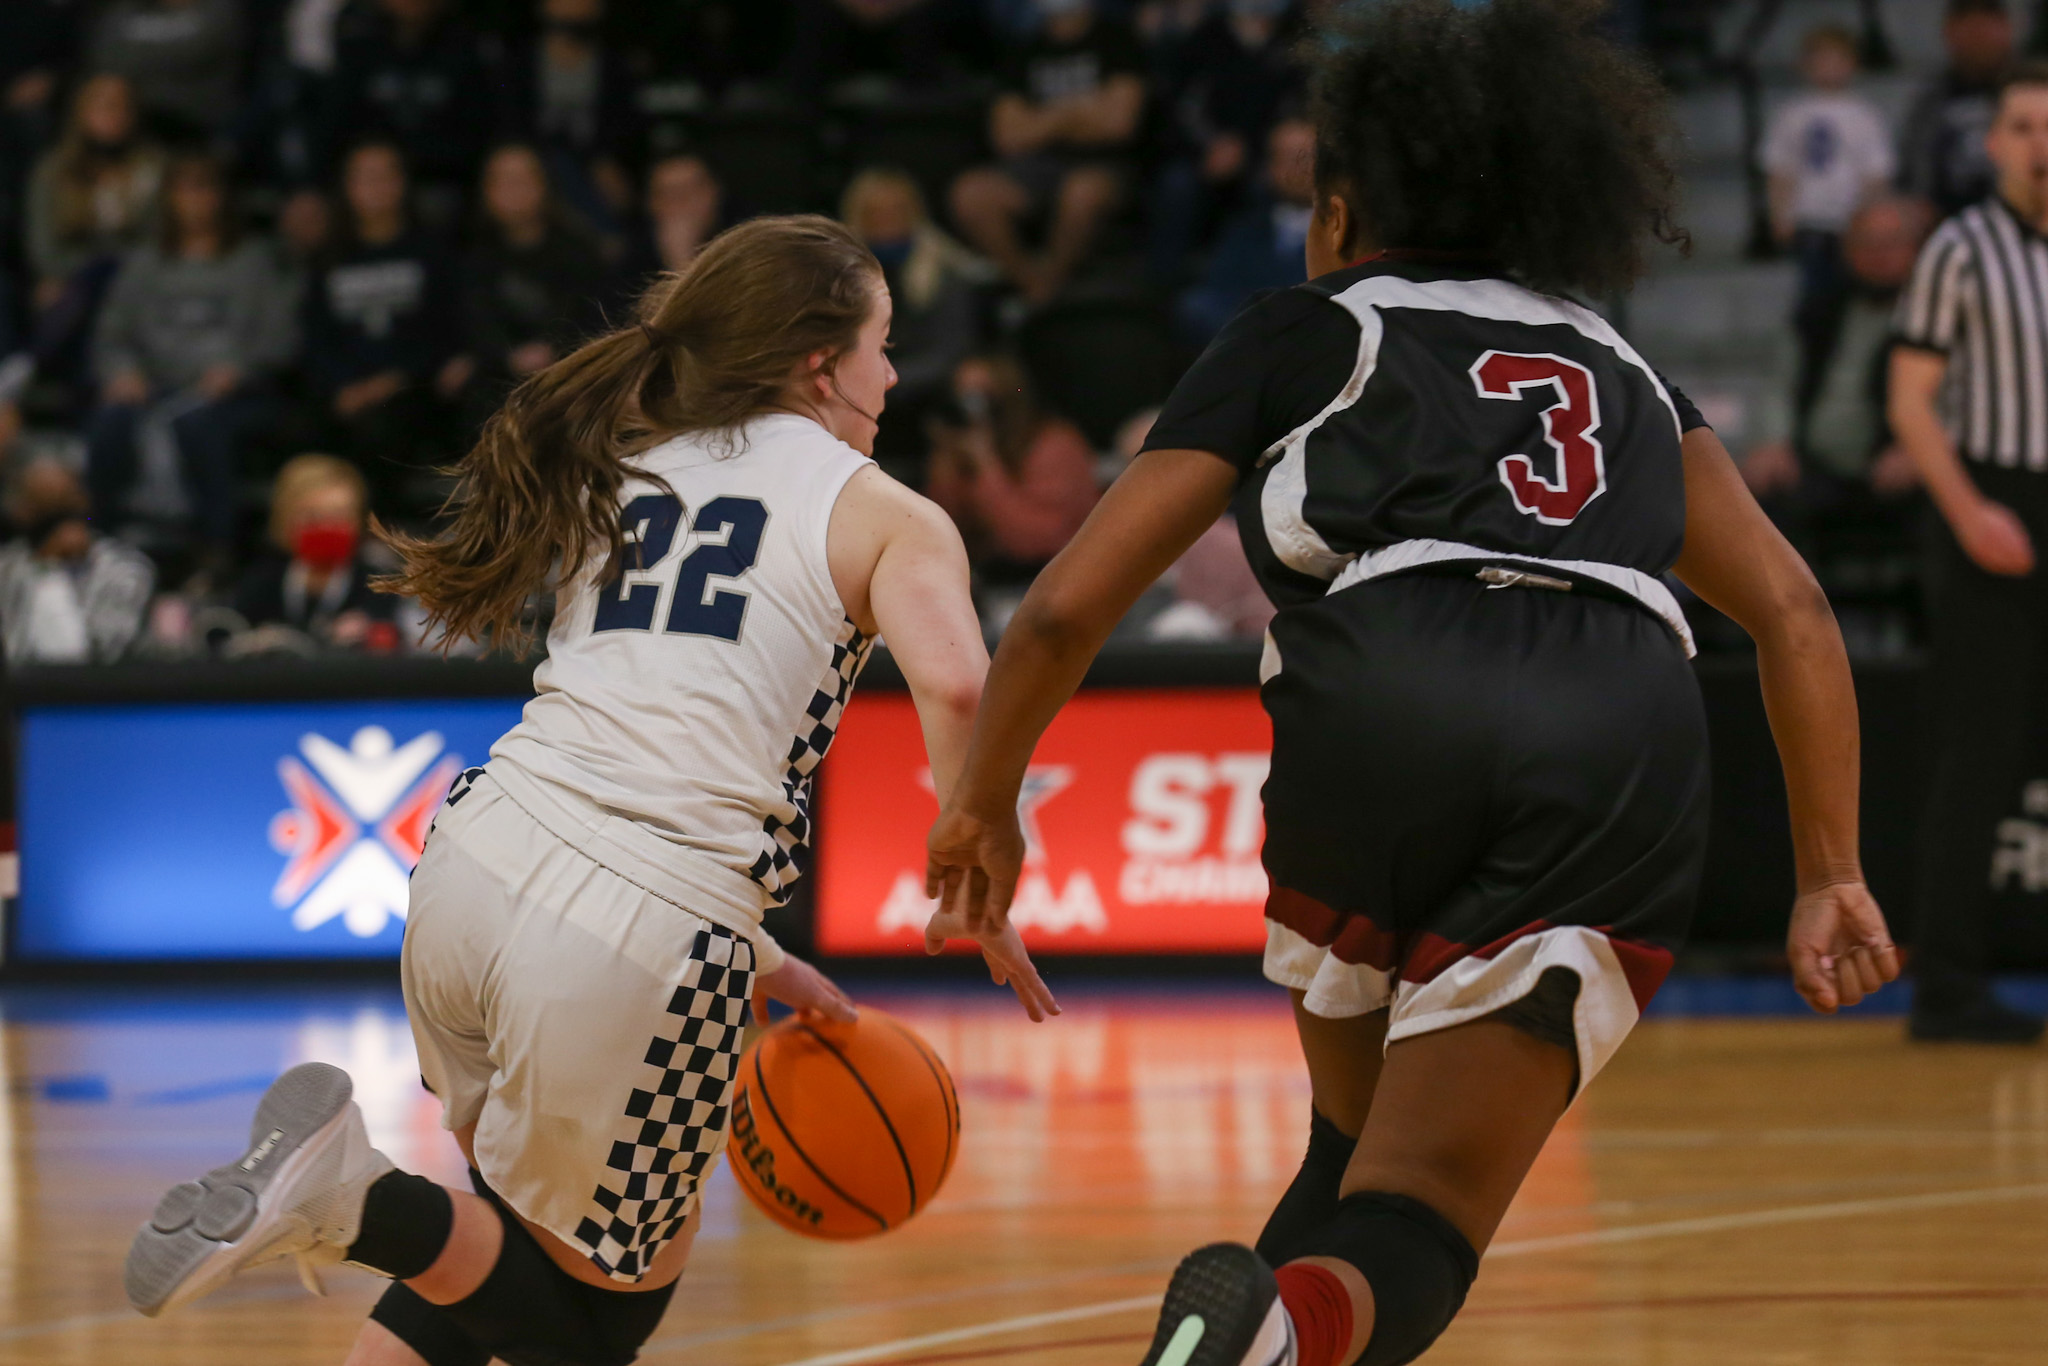 Class 4A Girls' State Championship: Rogers 48, Anniston 37